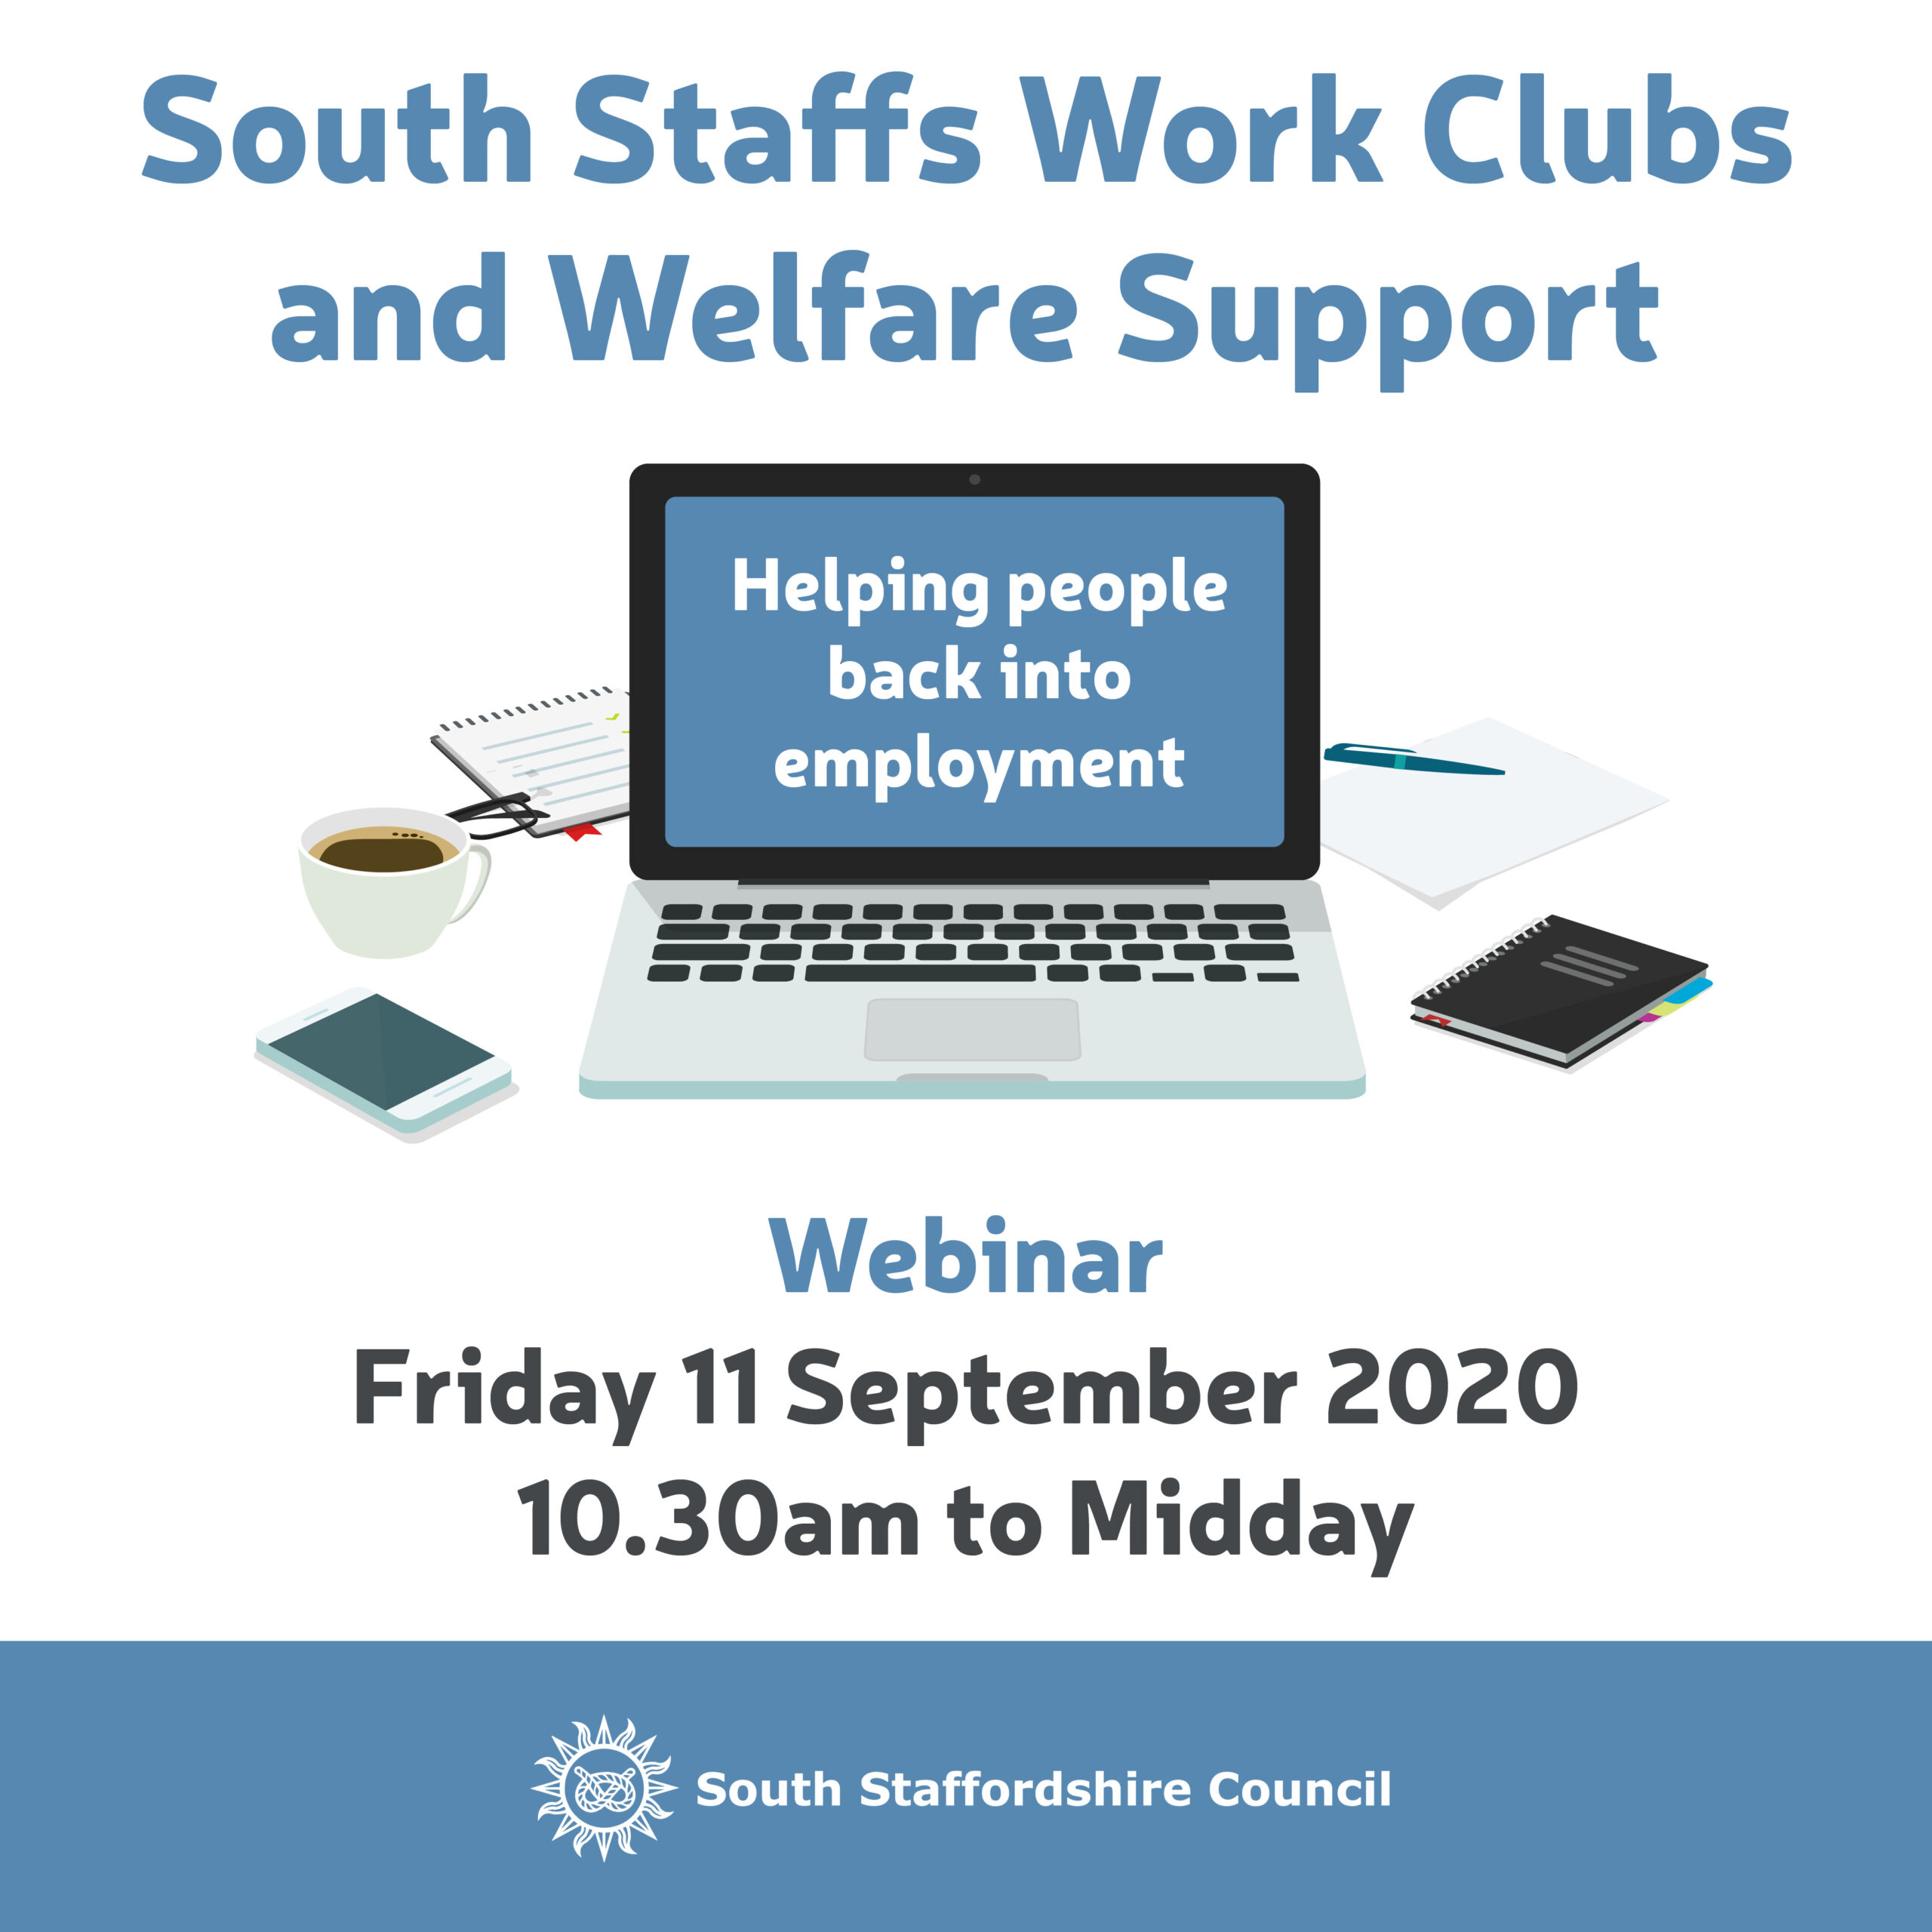 South Staffs Work Clubs Webinar